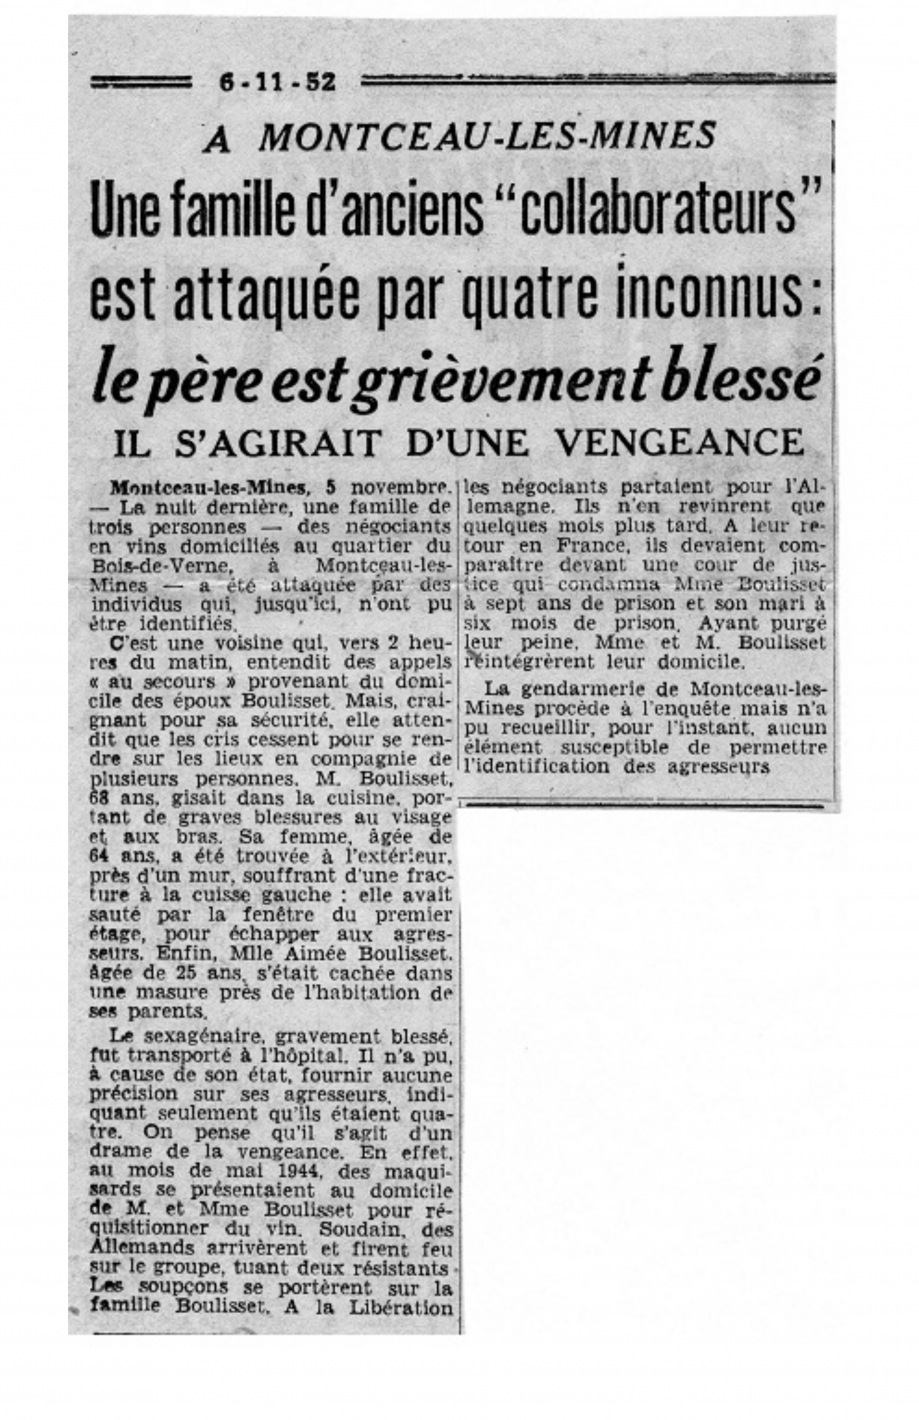 Le Parisien 1952 - Copie.jpg